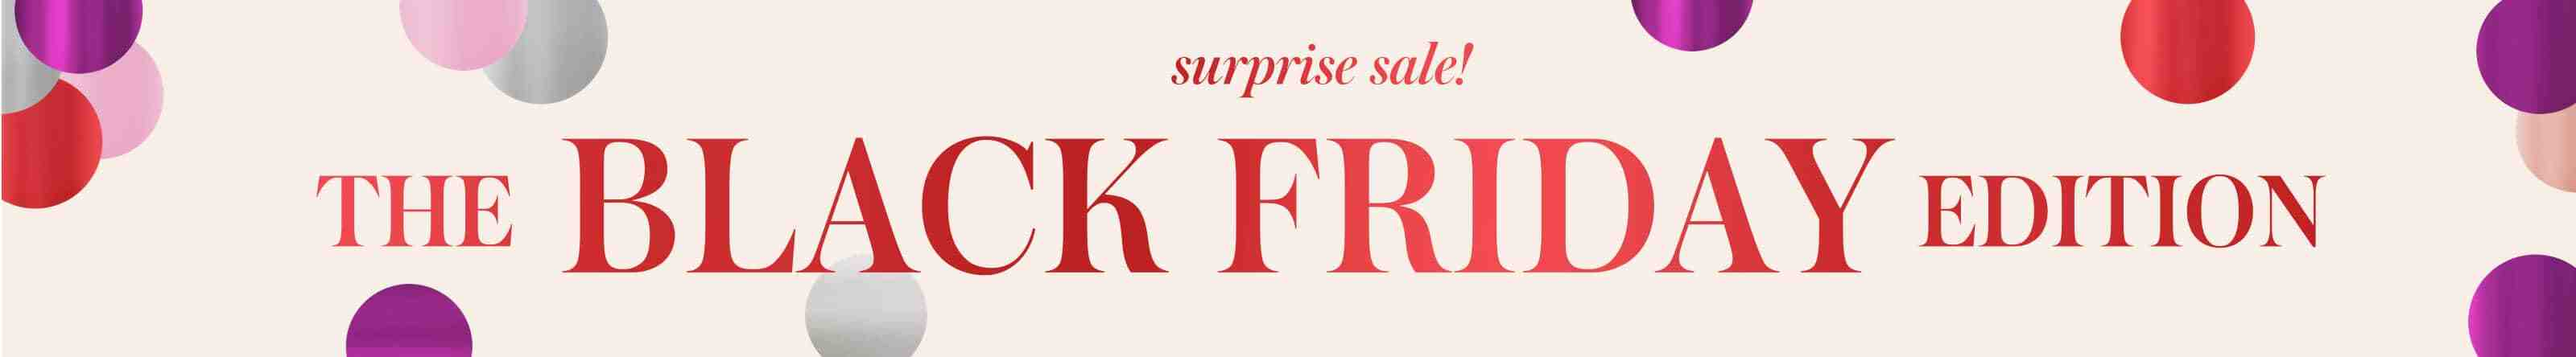 surprise sale! the black friday edition.